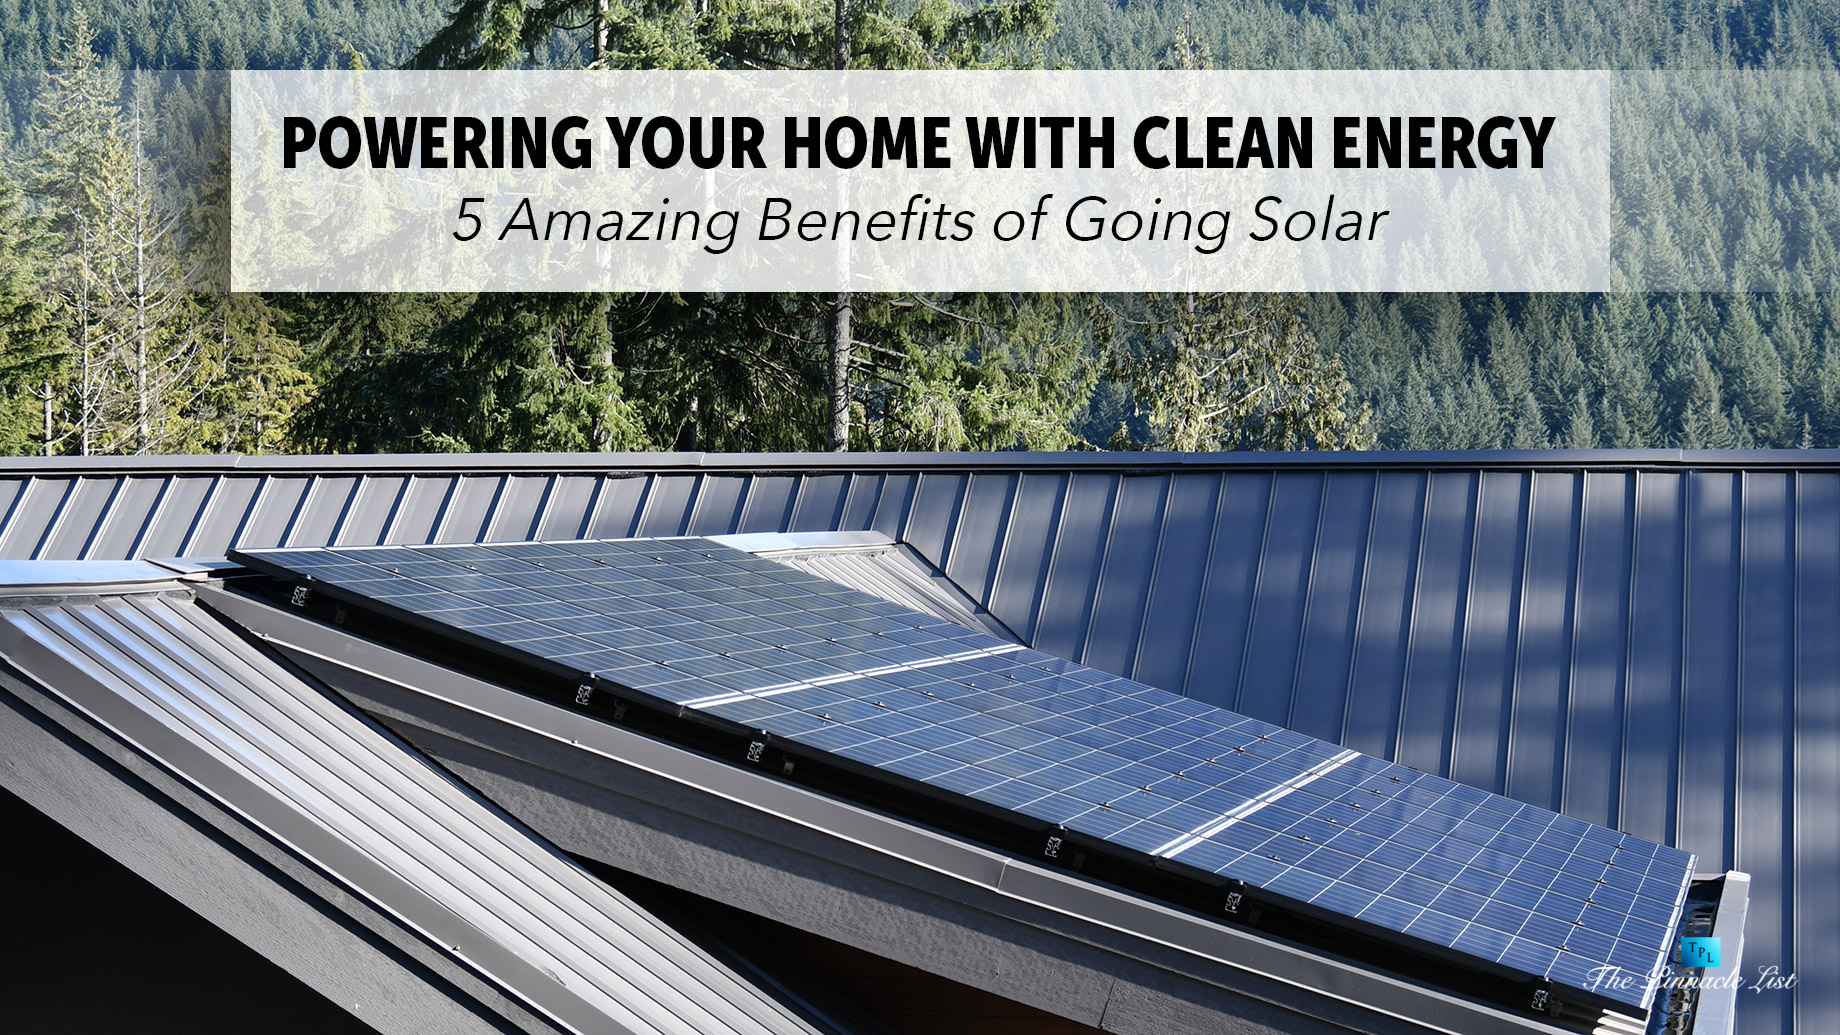 Powering Your Home With Clean Energy - 5 Amazing Benefits of Going Solar